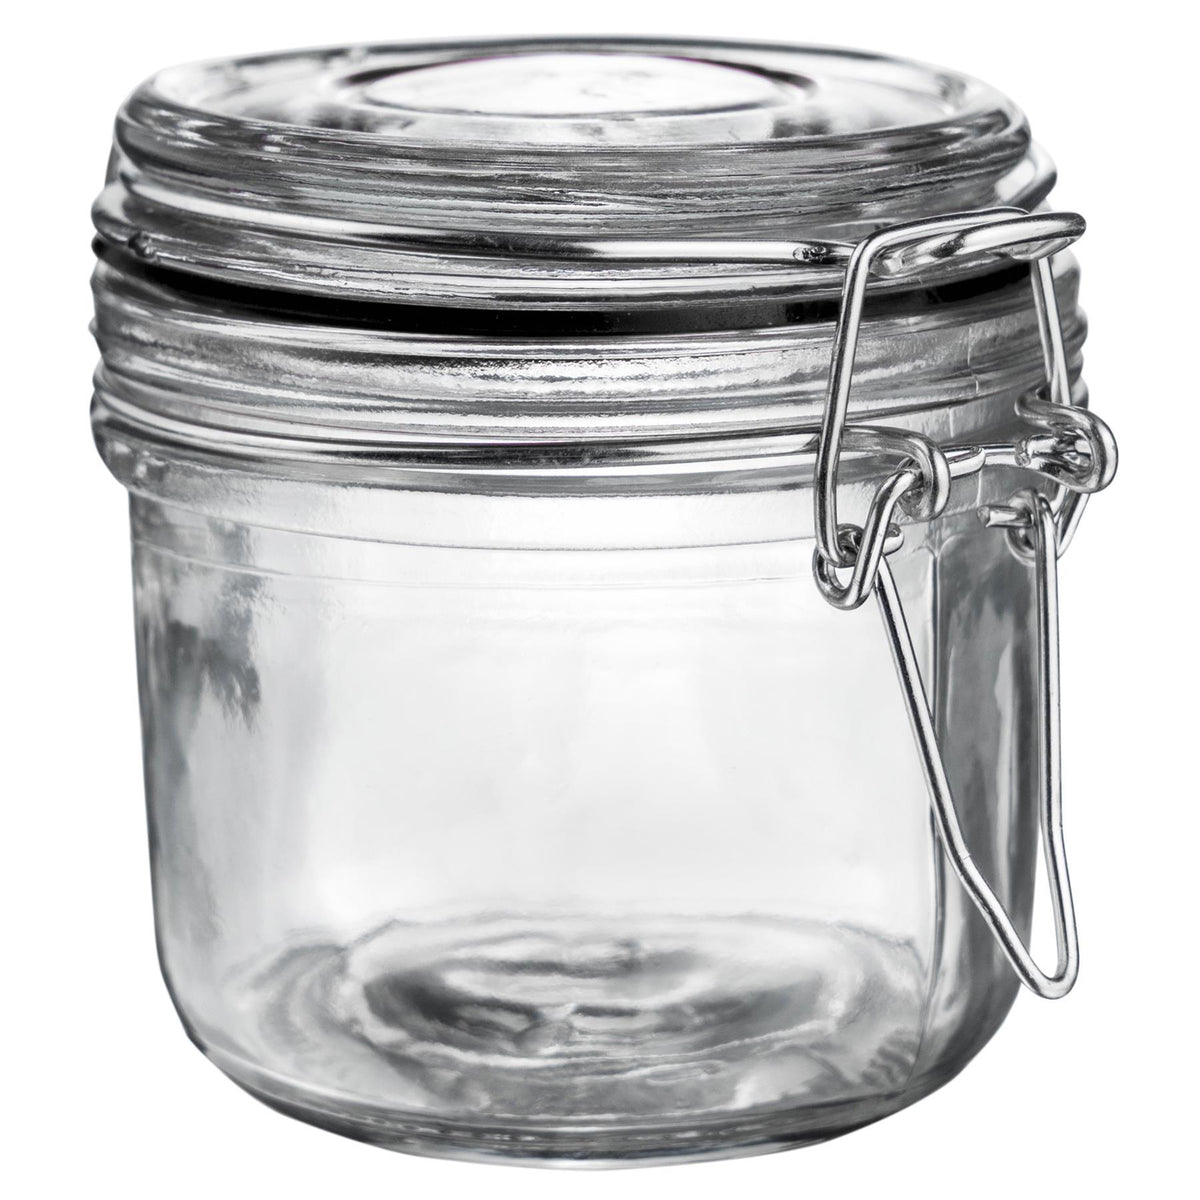 Argon Tableware Glass Storage Jar - 200ml - Black Seal